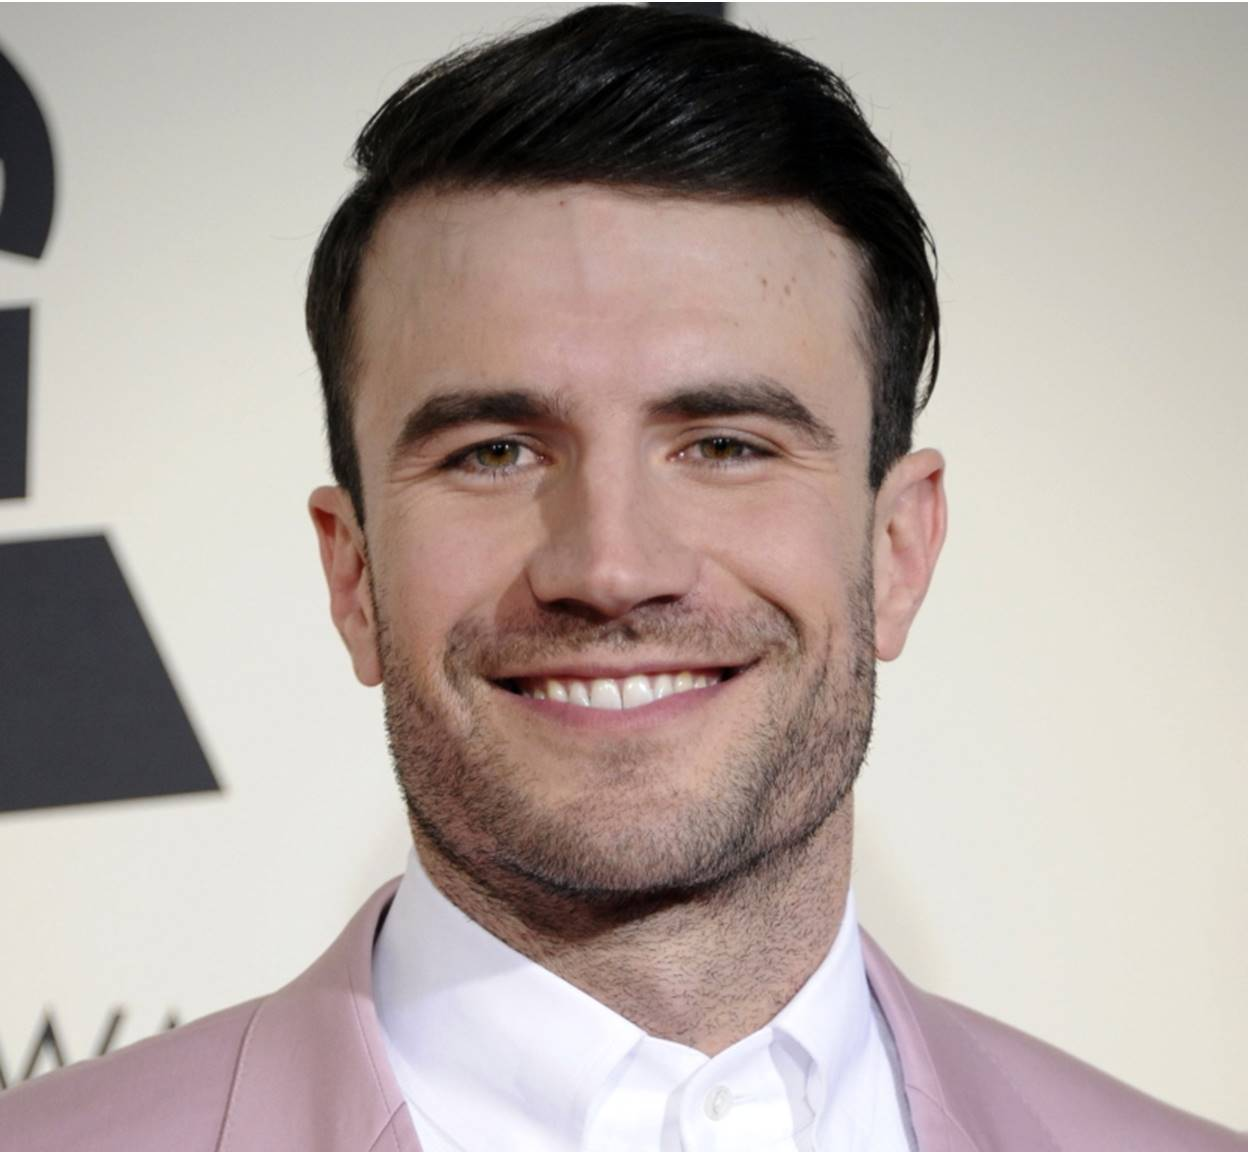 Sam Hunt: Reasons To Fall In Love With Sam Hunt [Photos & Videos]